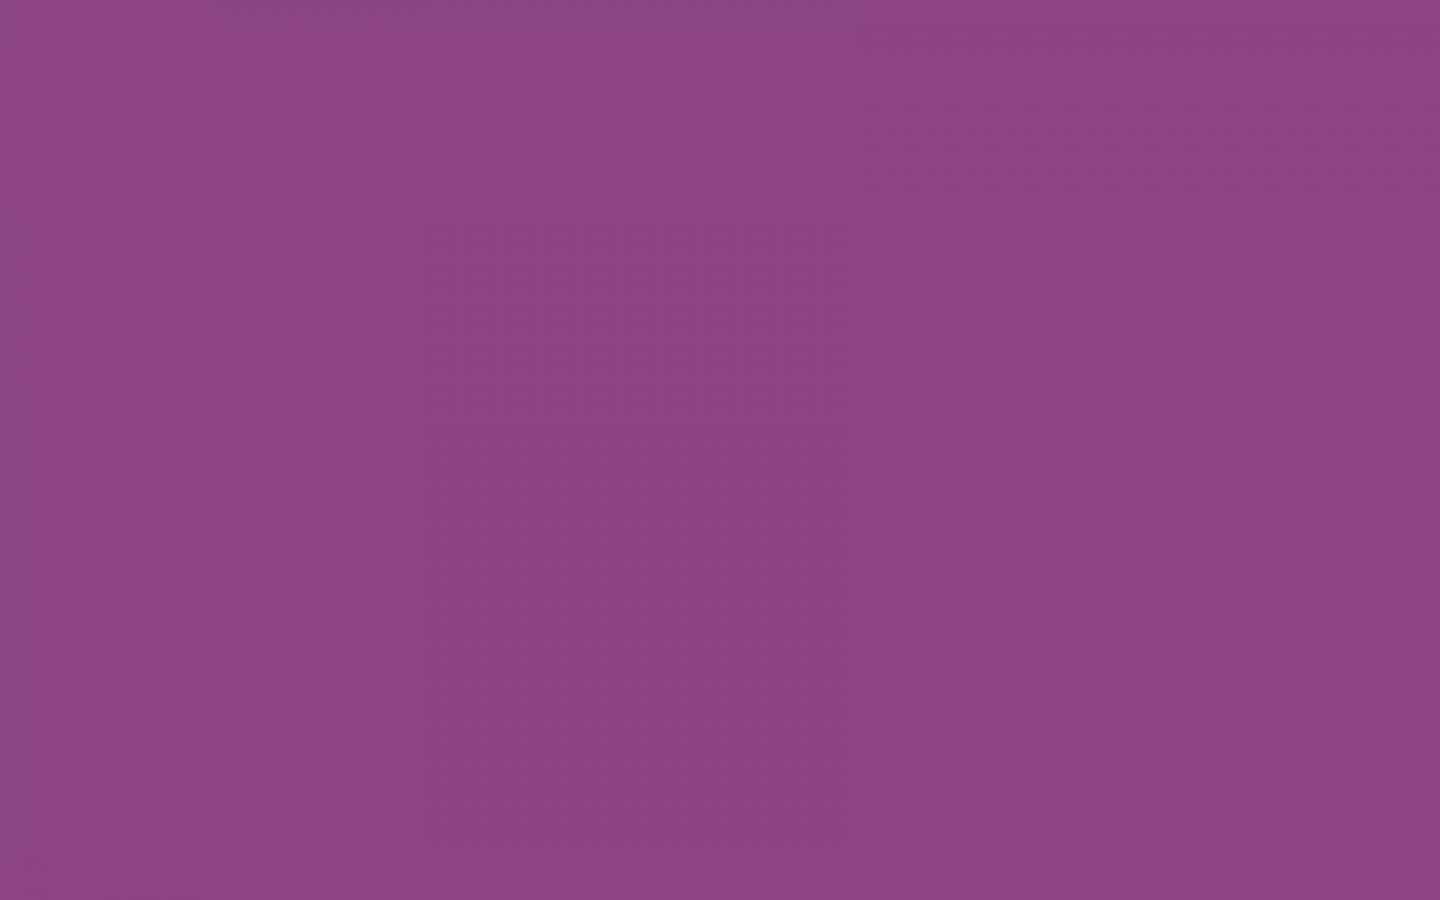 Solid Color Wallpaper Border With Plum Color In Hd Hd